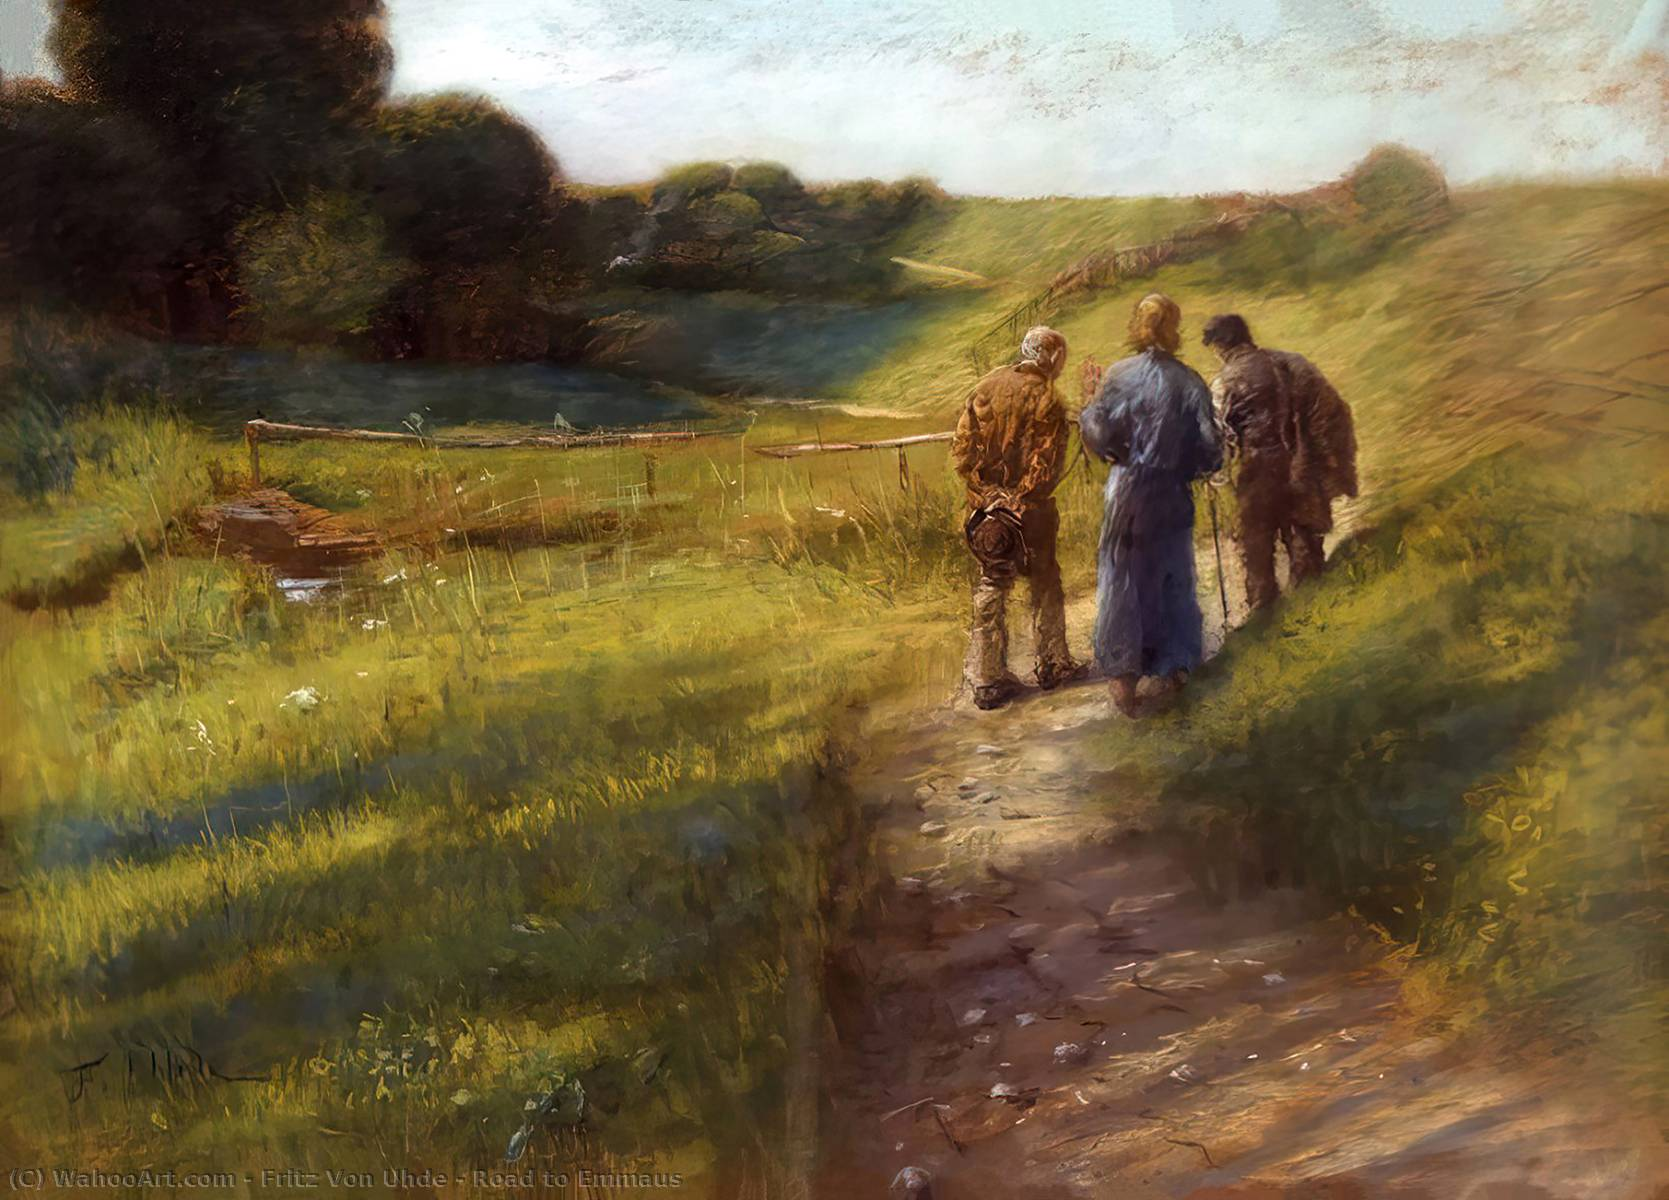 Road to Emmaus, Pastel by Fritz Von Uhde (1848-1911)